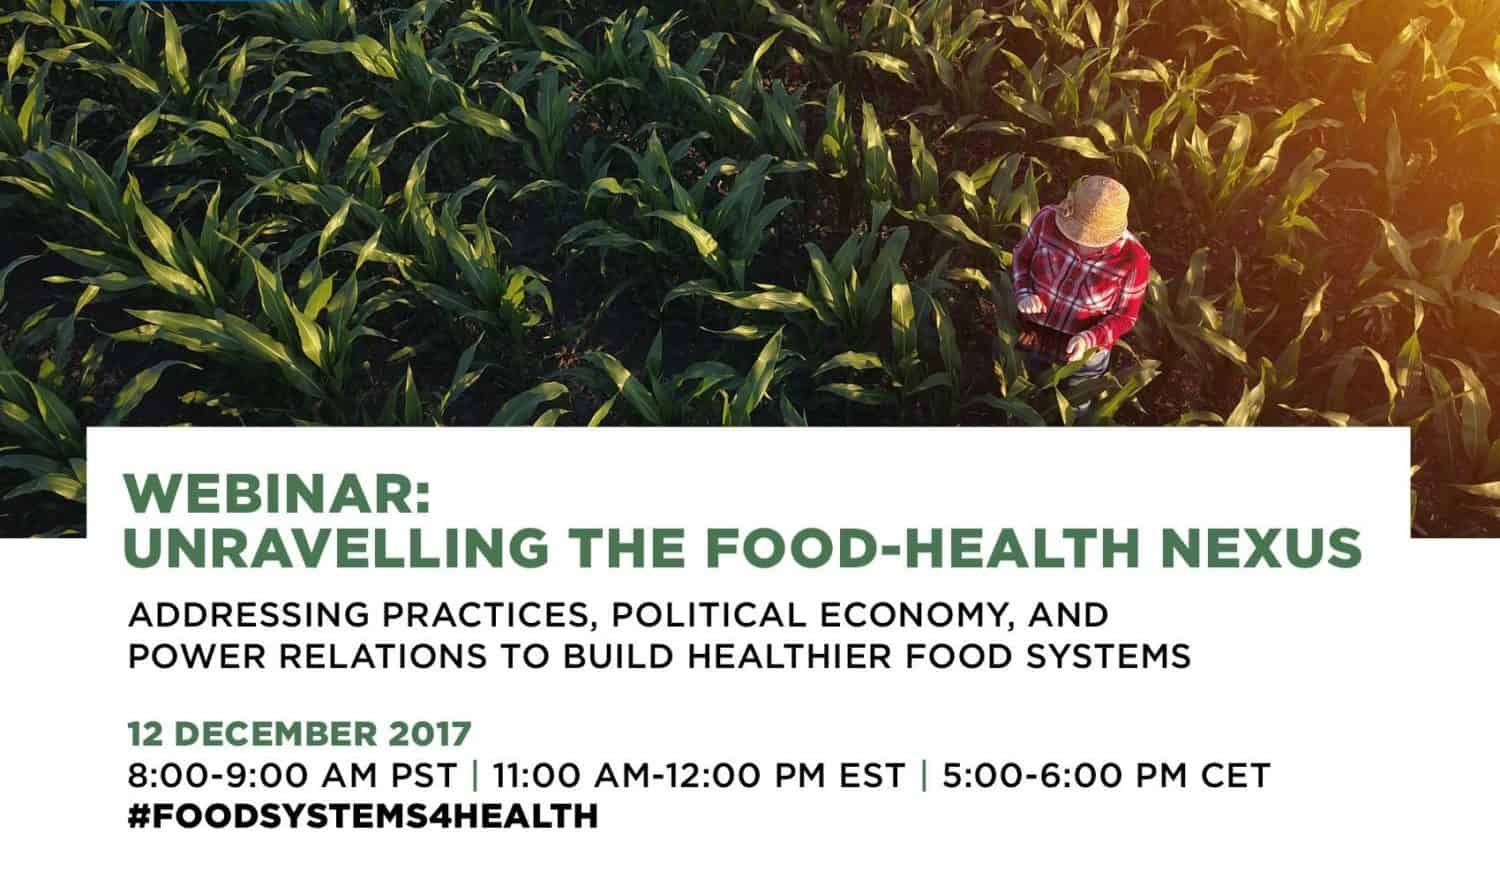 The Global Alliance for the Future of Food will host a webinar on December 12, 2017, at 11 am EST on their report titled Unravelling the Food-Health Nexus.